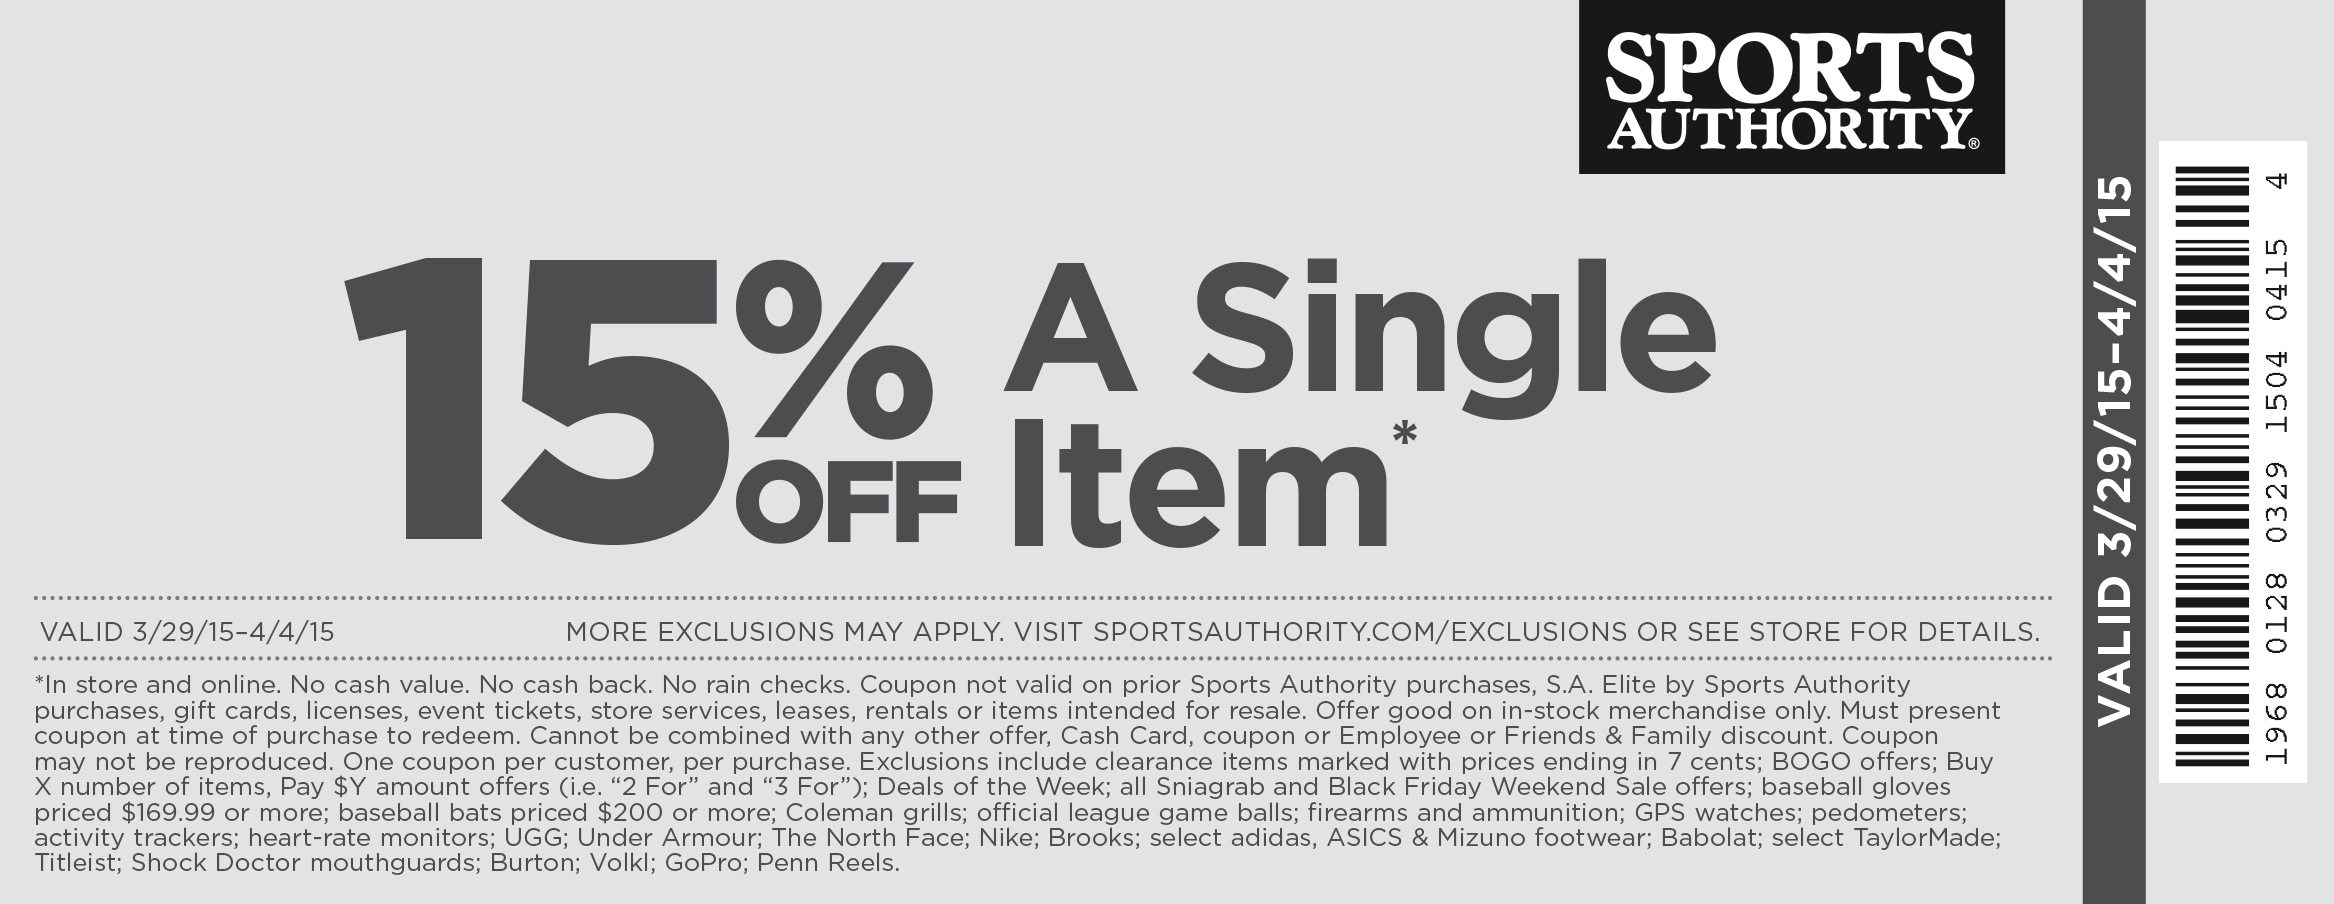 sports authority coupons  march